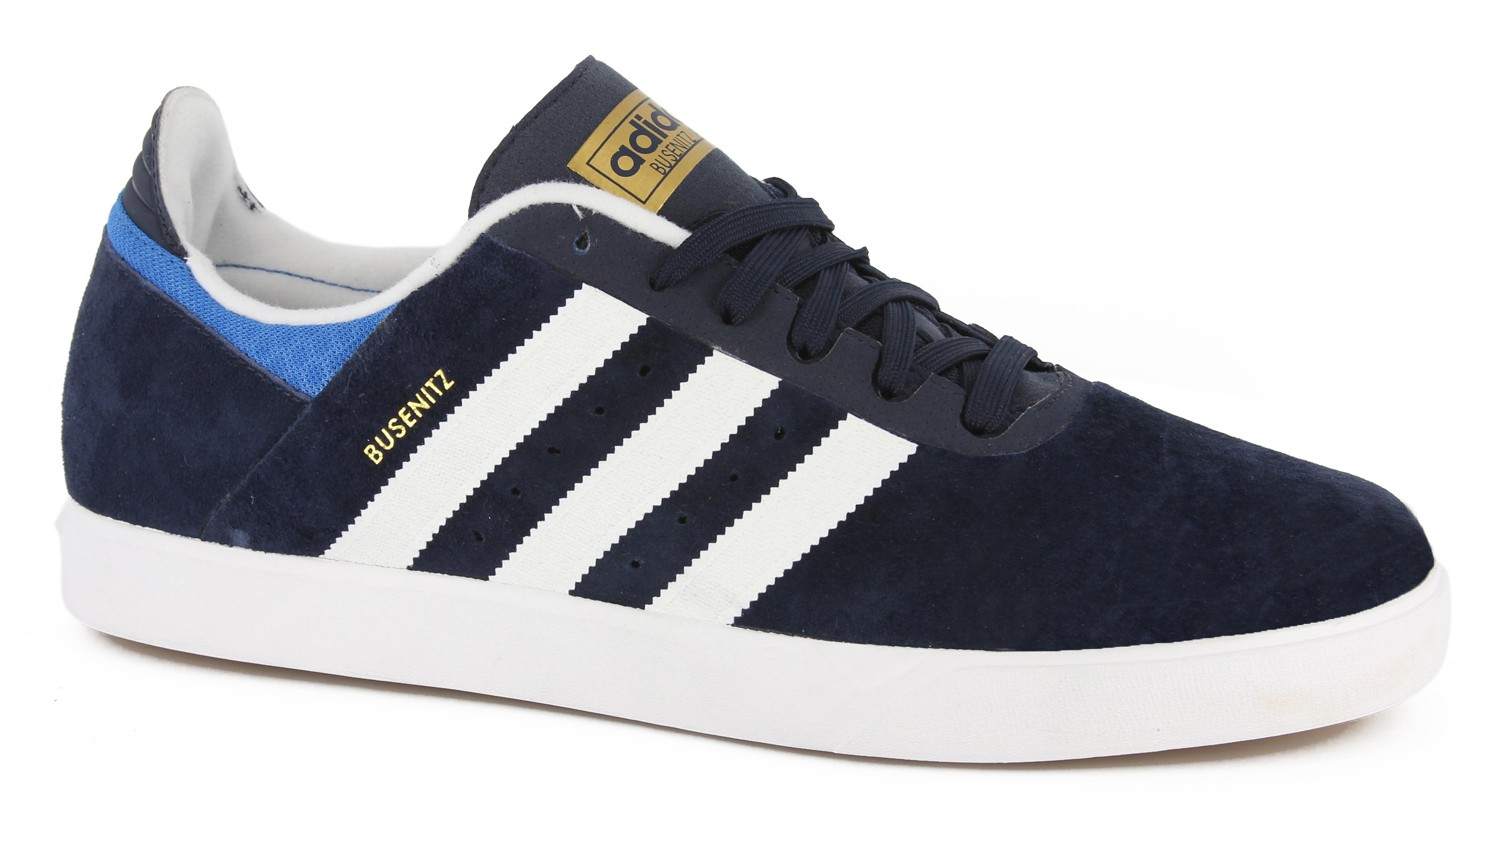 adidas busenitz adv shoes